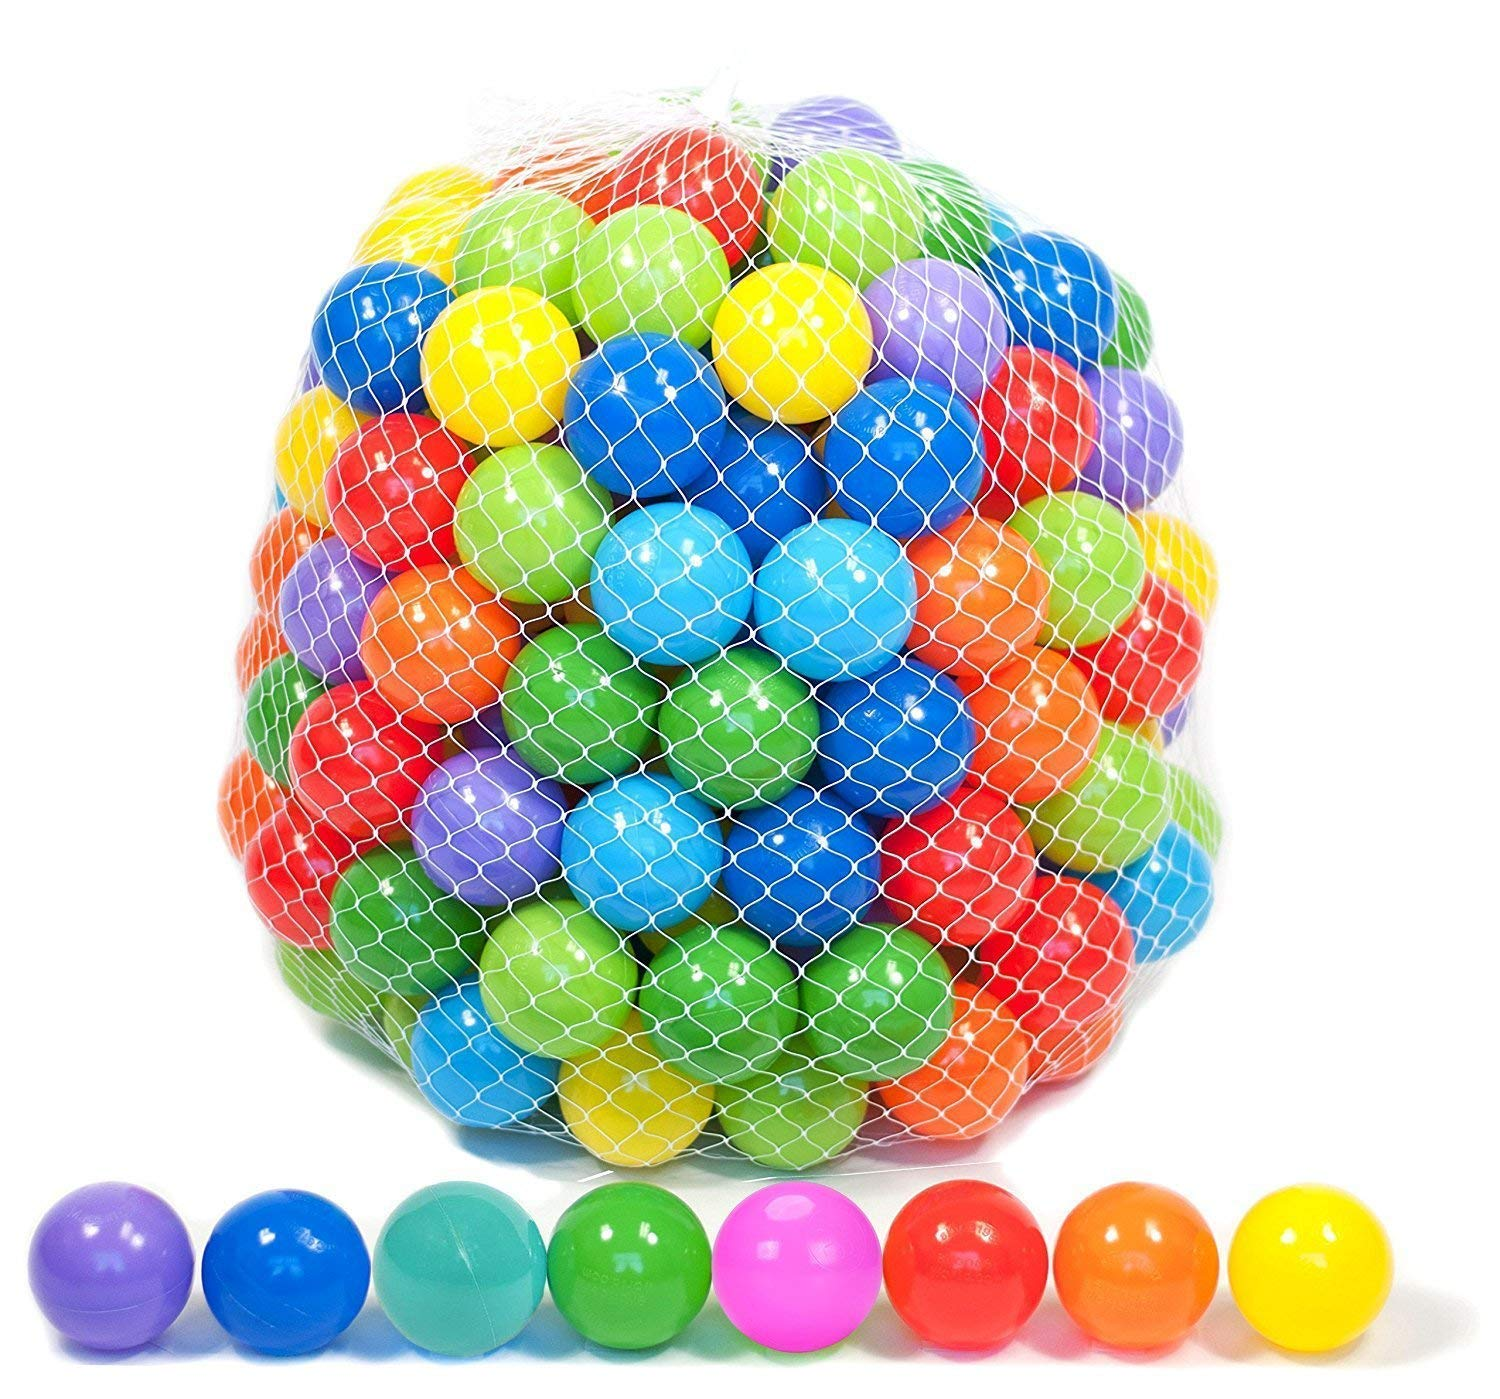 Playz 50 Soft Plastic Mini Play Balls w/ 8 Vibrant Colors - Crush Proof, No Sharp Edges, Certified Non Toxic, Phthalate & BPA Free - Use in Baby Toddler Ball Pit, Play Tents & Tunnels Indoor & Outdoor by Playz